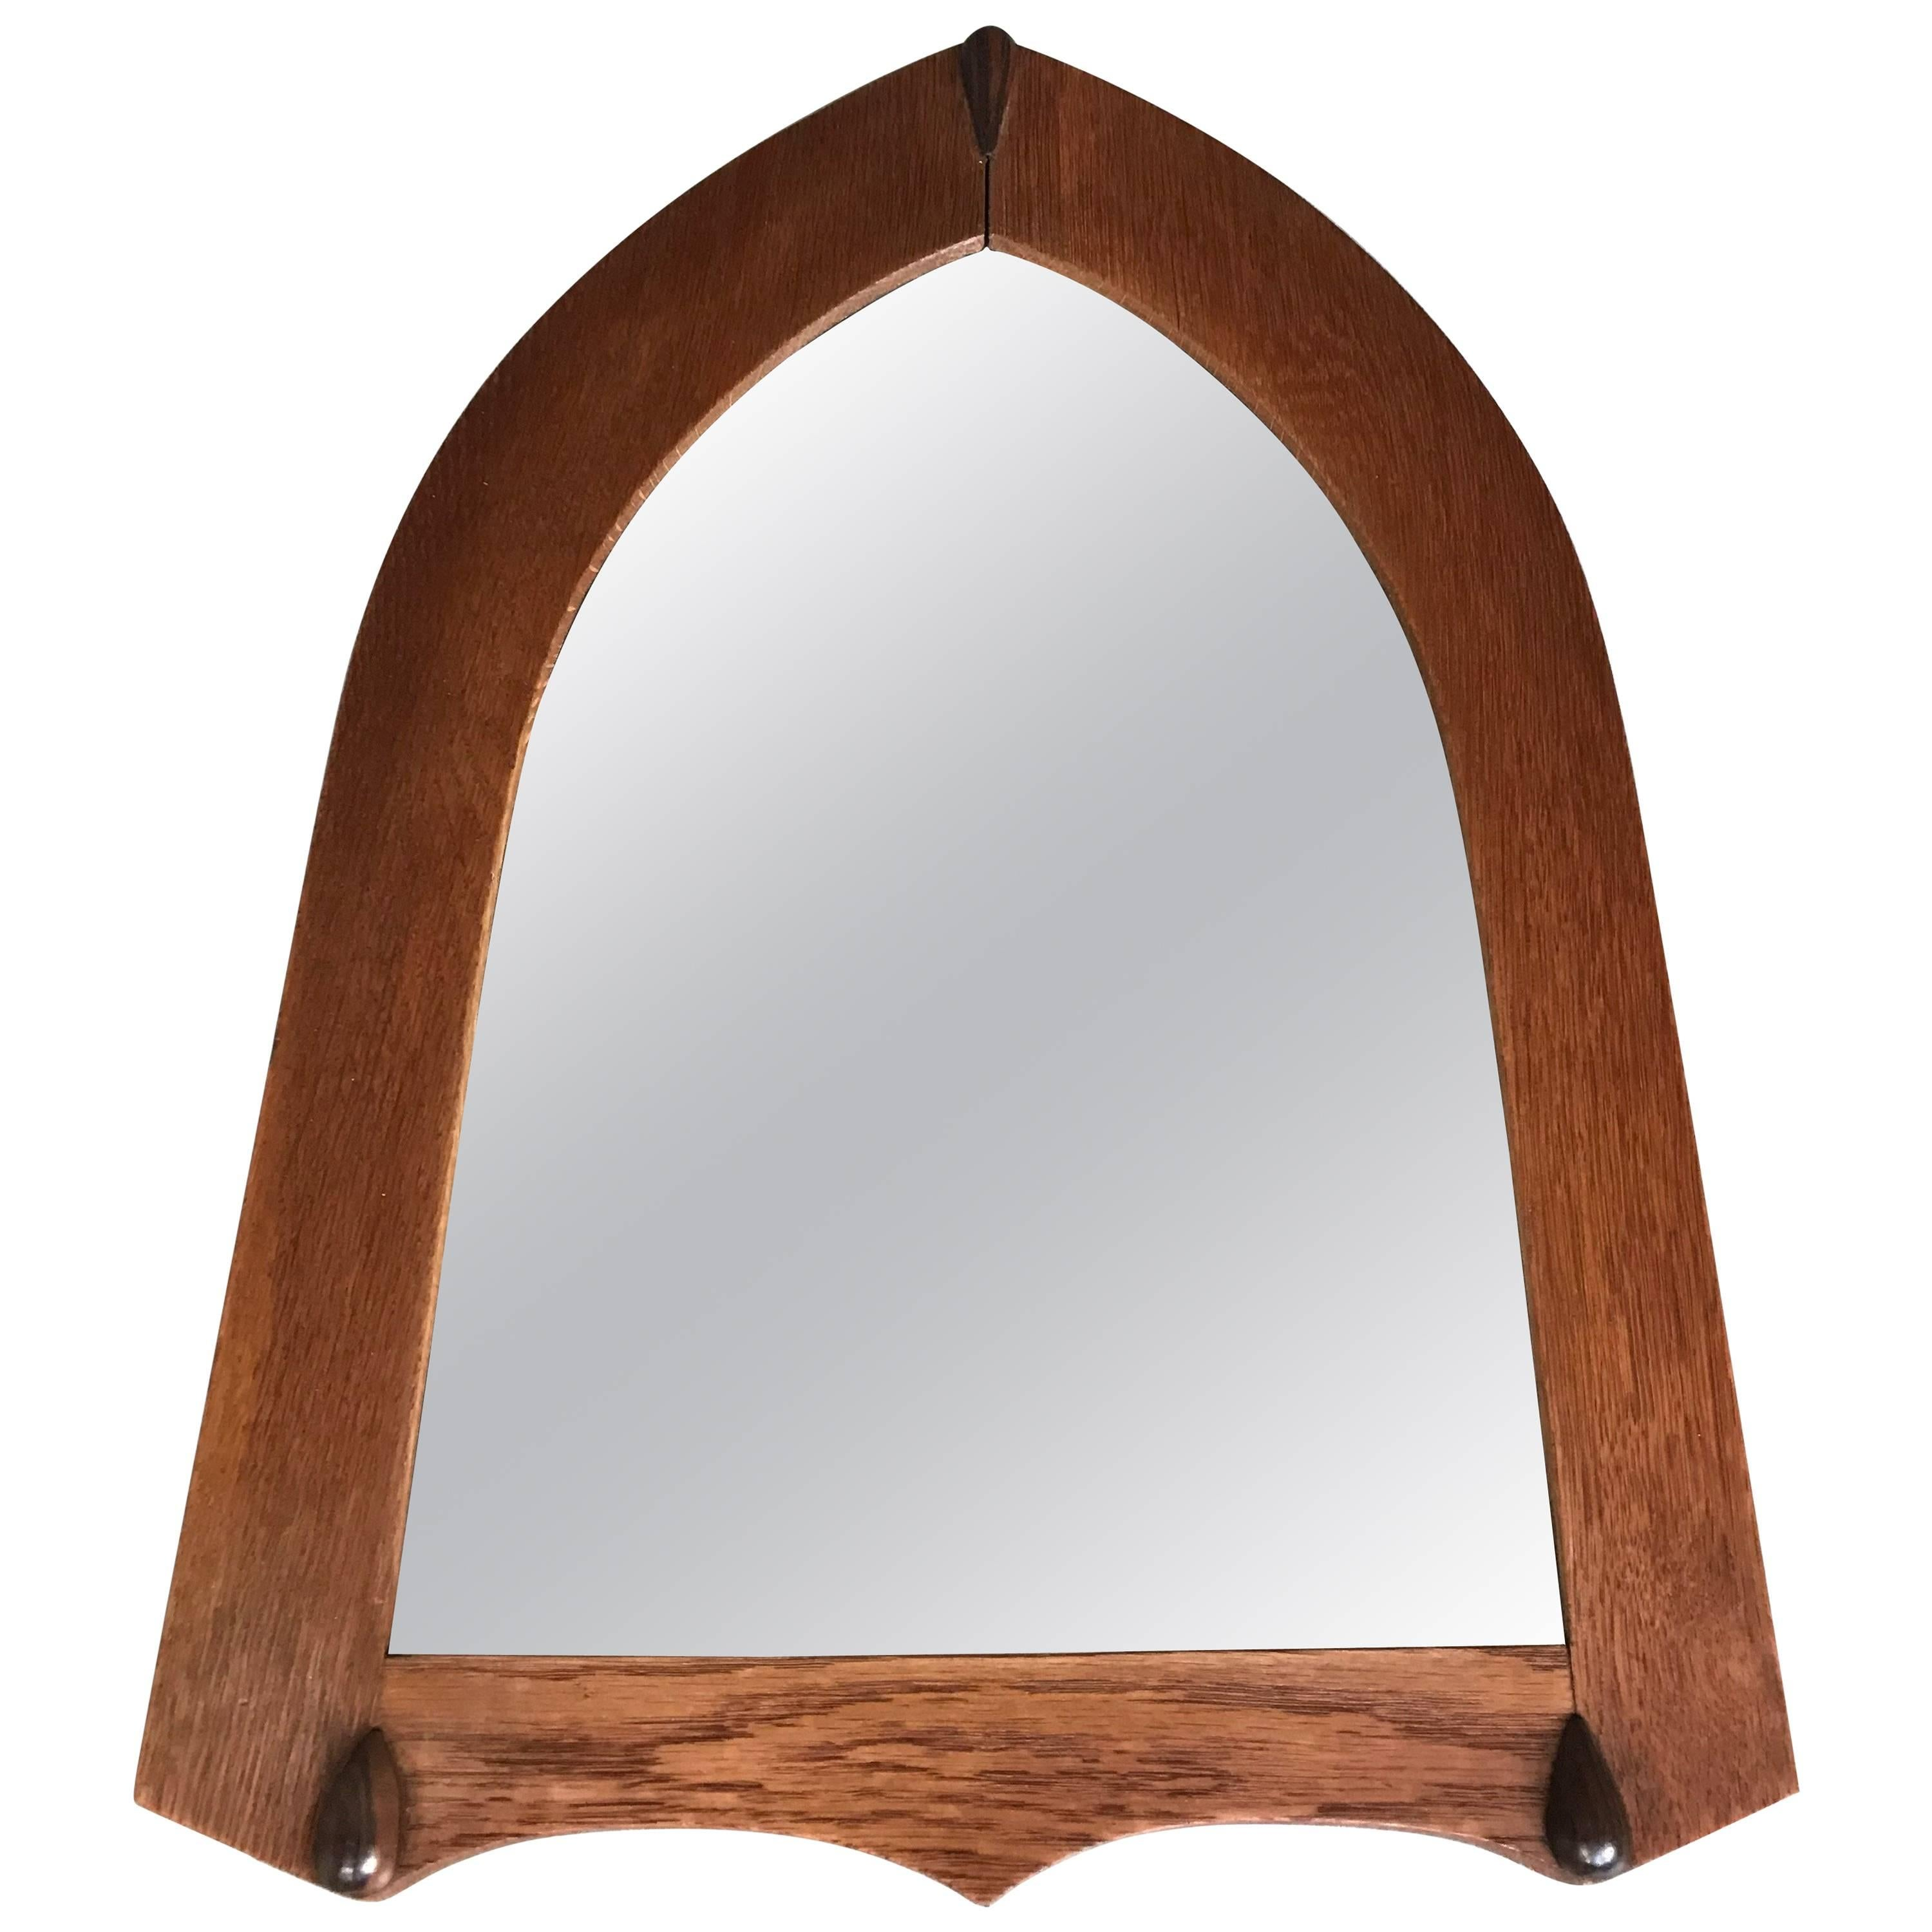 Early 1900s Arts And Crafts Stylized Triangle Wall Mirror In Oak Macar Frame For At 1stdibs